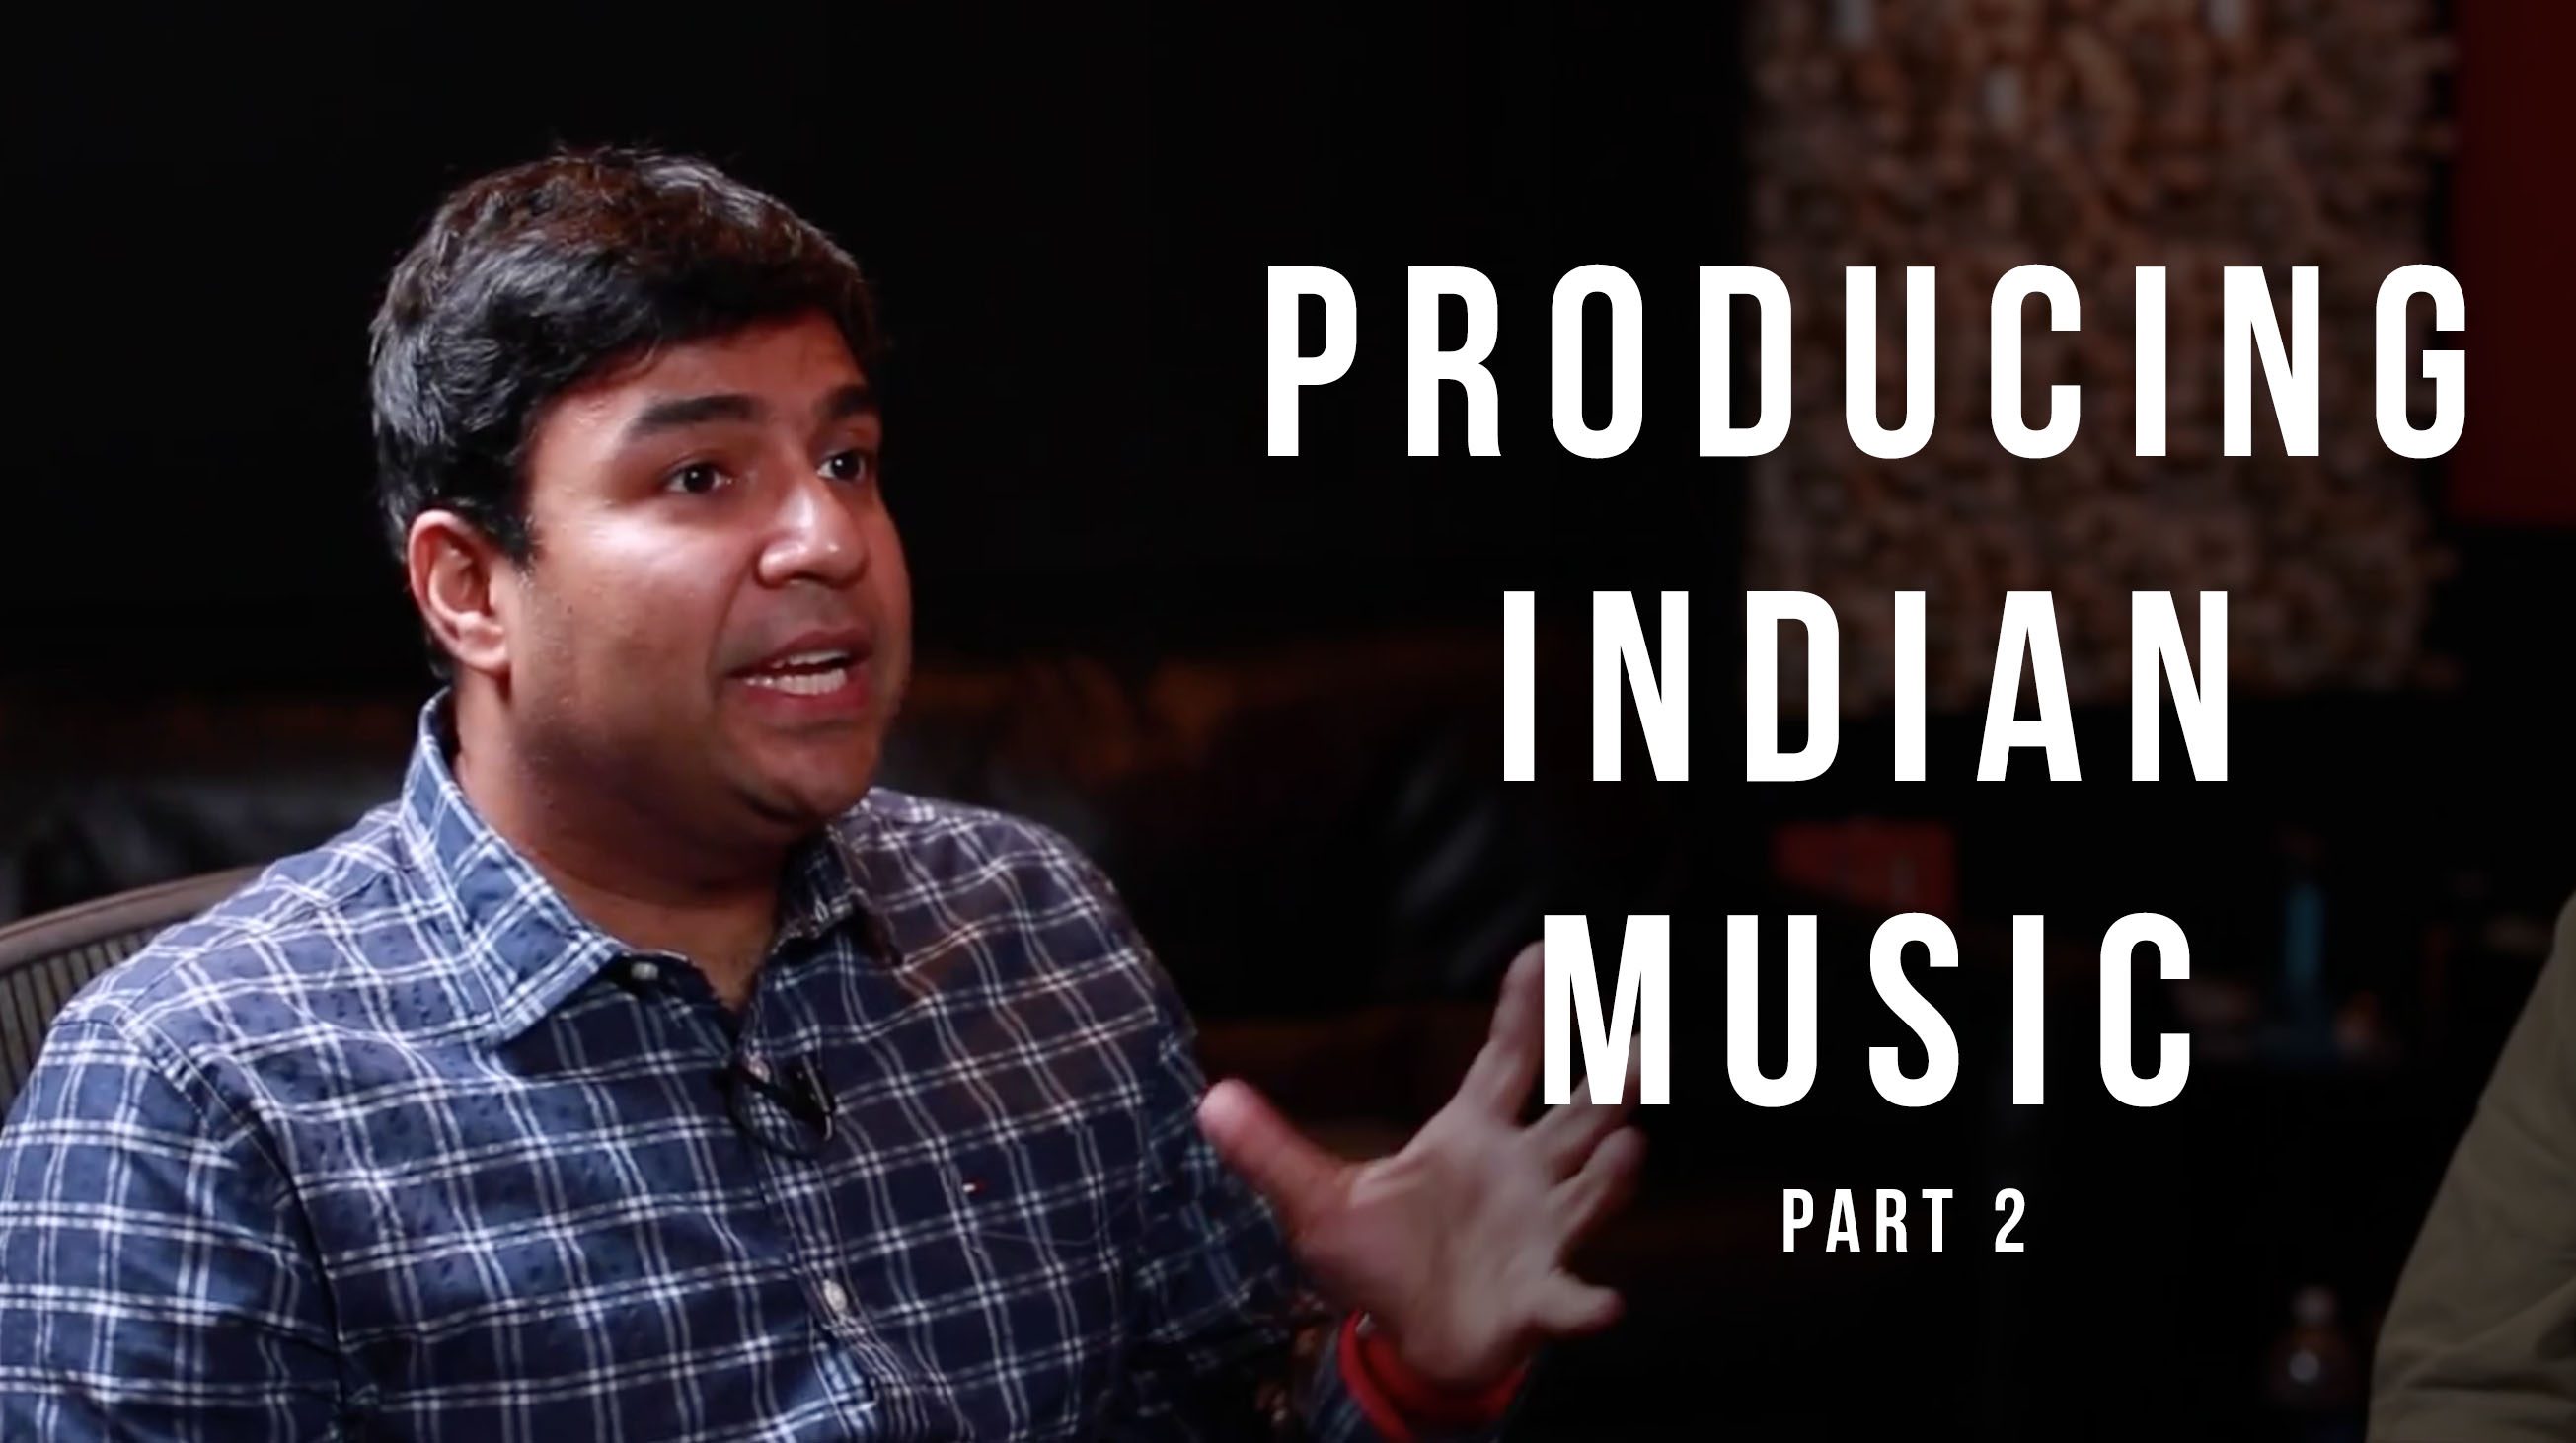 Producing Indian Music with Gaurav Dayal pt.2